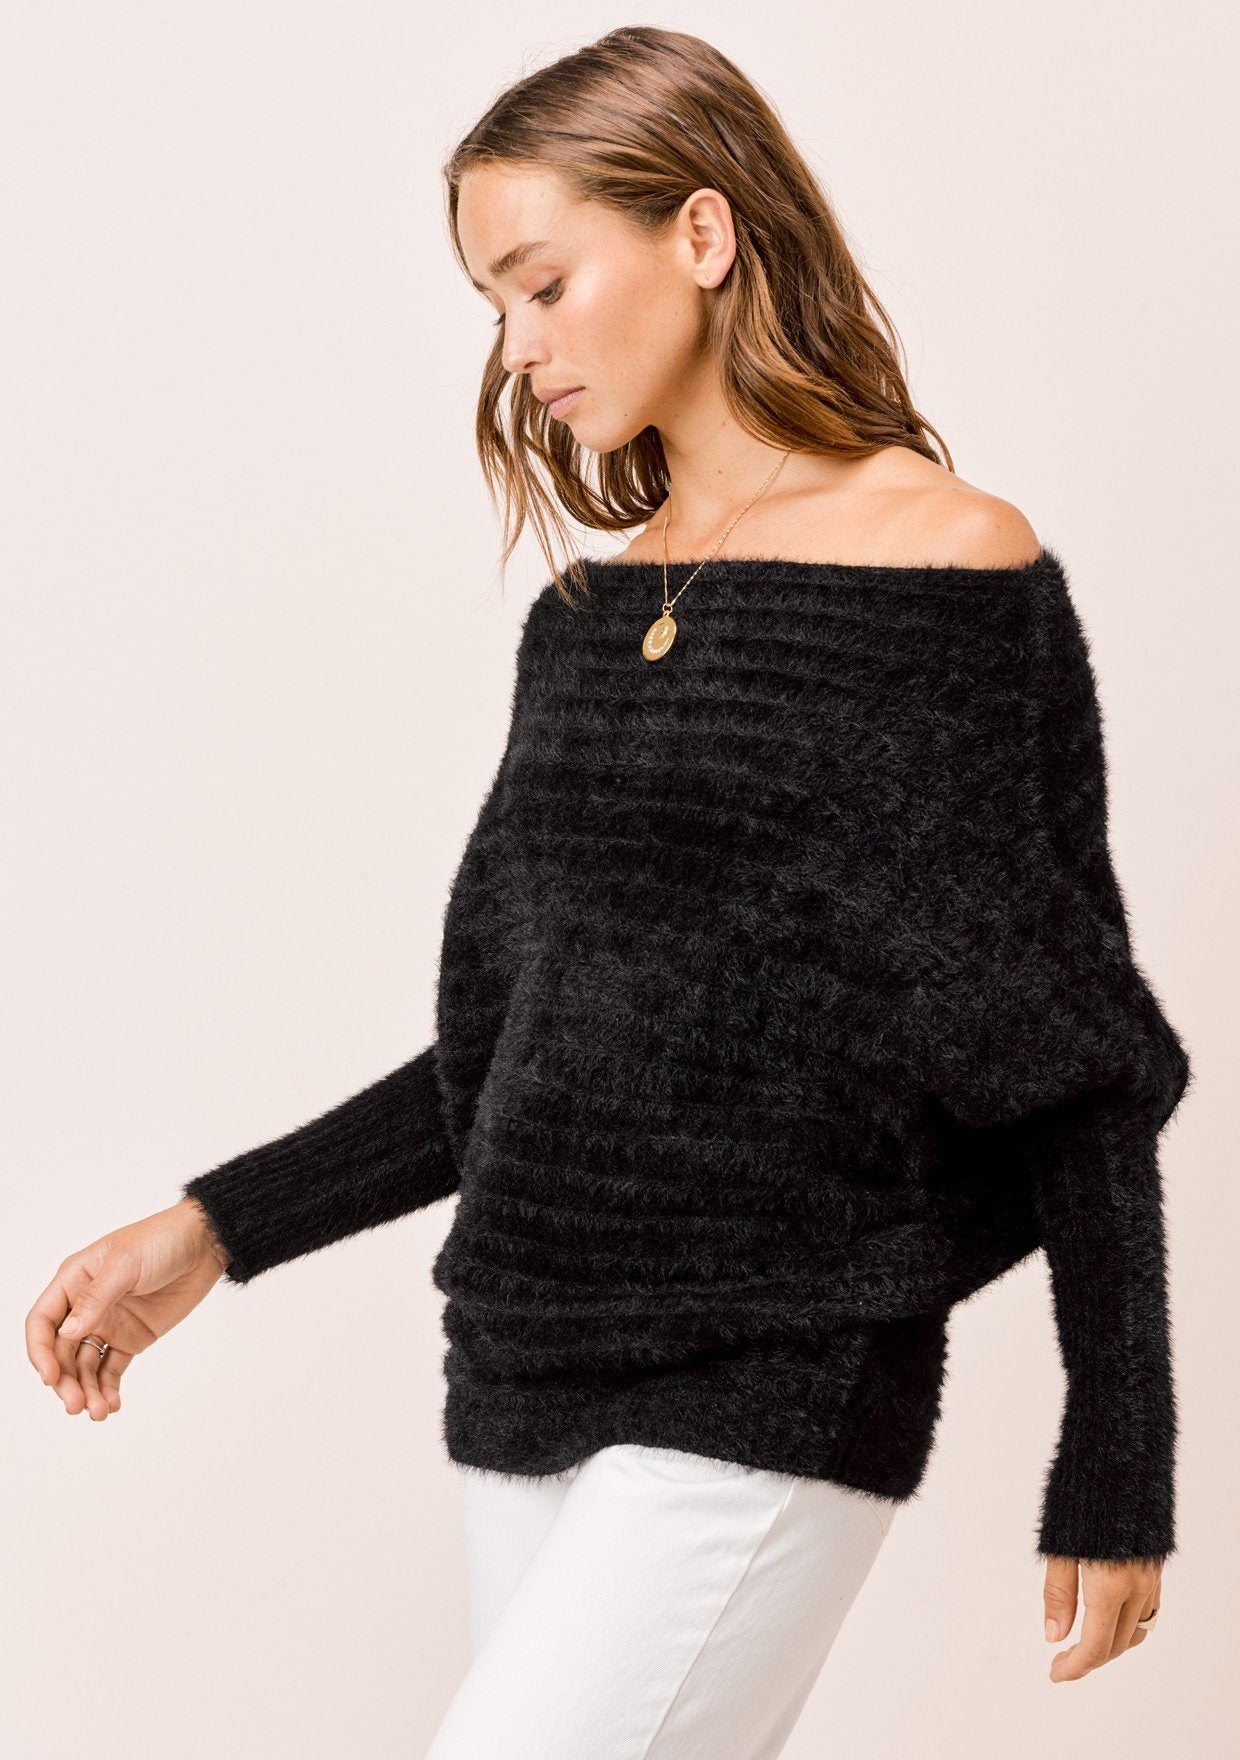 [Color: Black] Lovestitch black, fuzzy, textured stripe boatneck pullover.